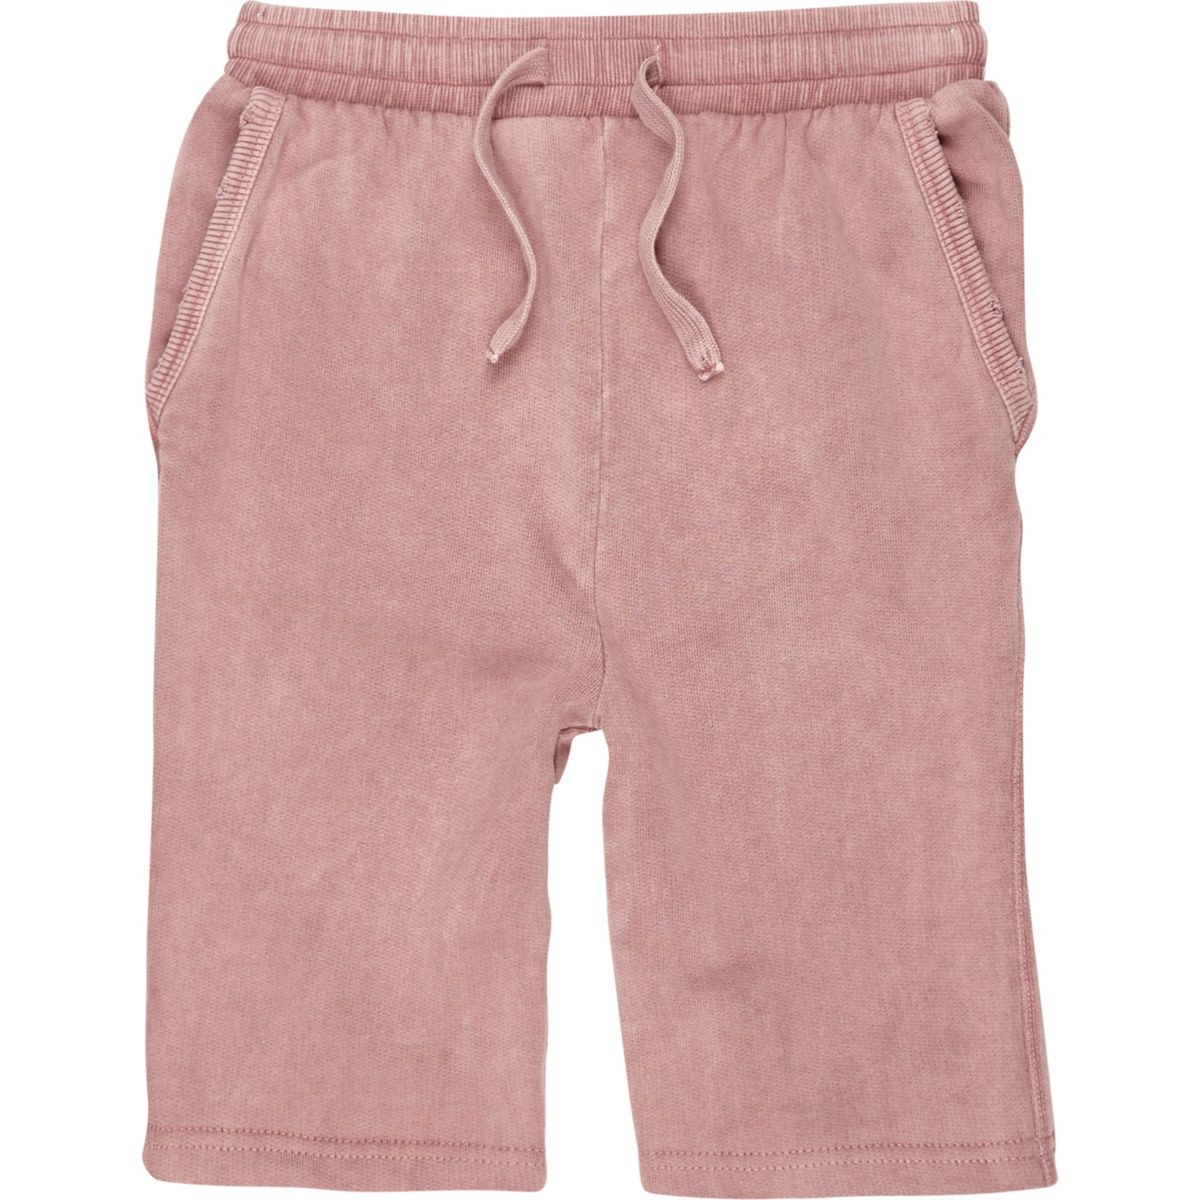 Boys pink washed jersey shorts